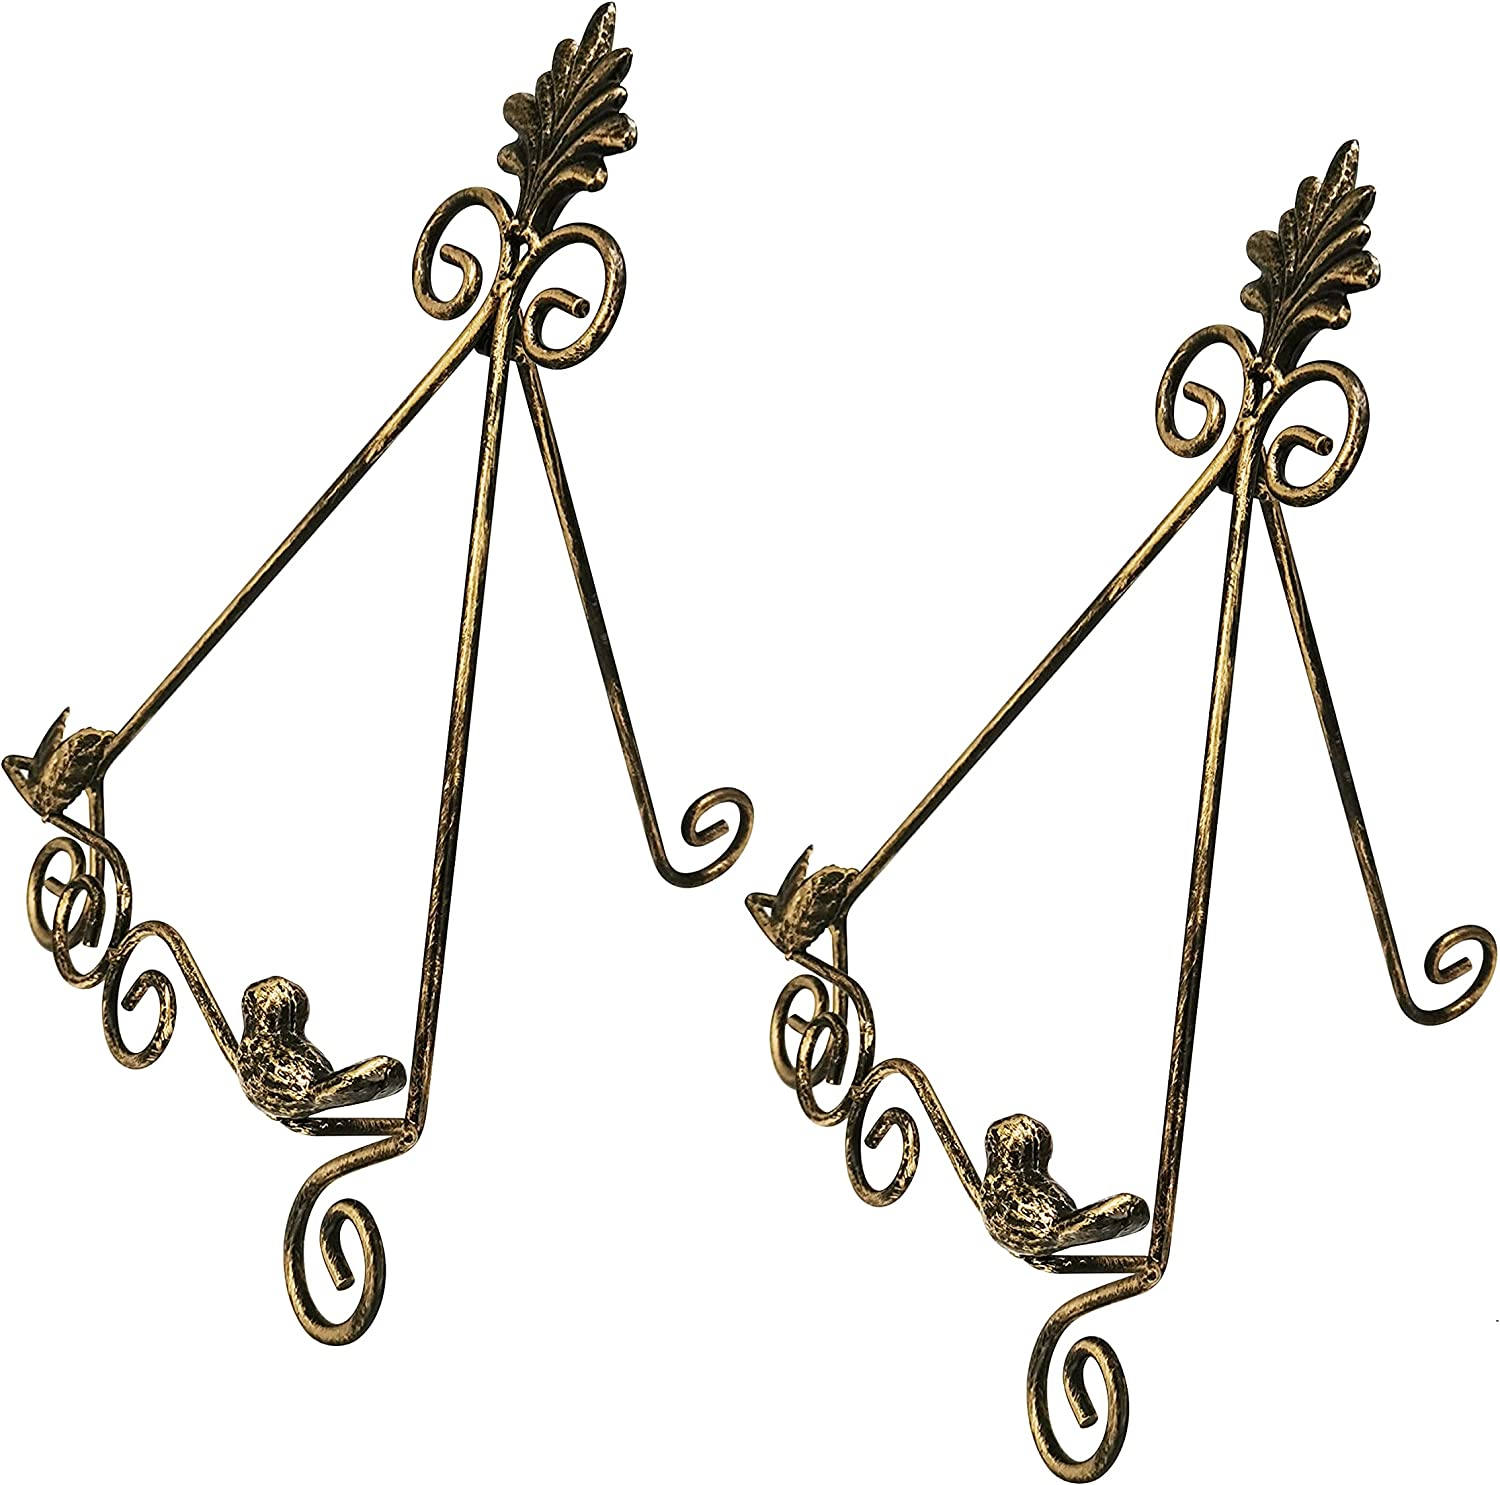 SHIEYOON Plate Picture Stand for Display Metal Wire Easel Book Photo Frame Platter Art Plaque Display Stands Holder Set of 2(Large - 13.8